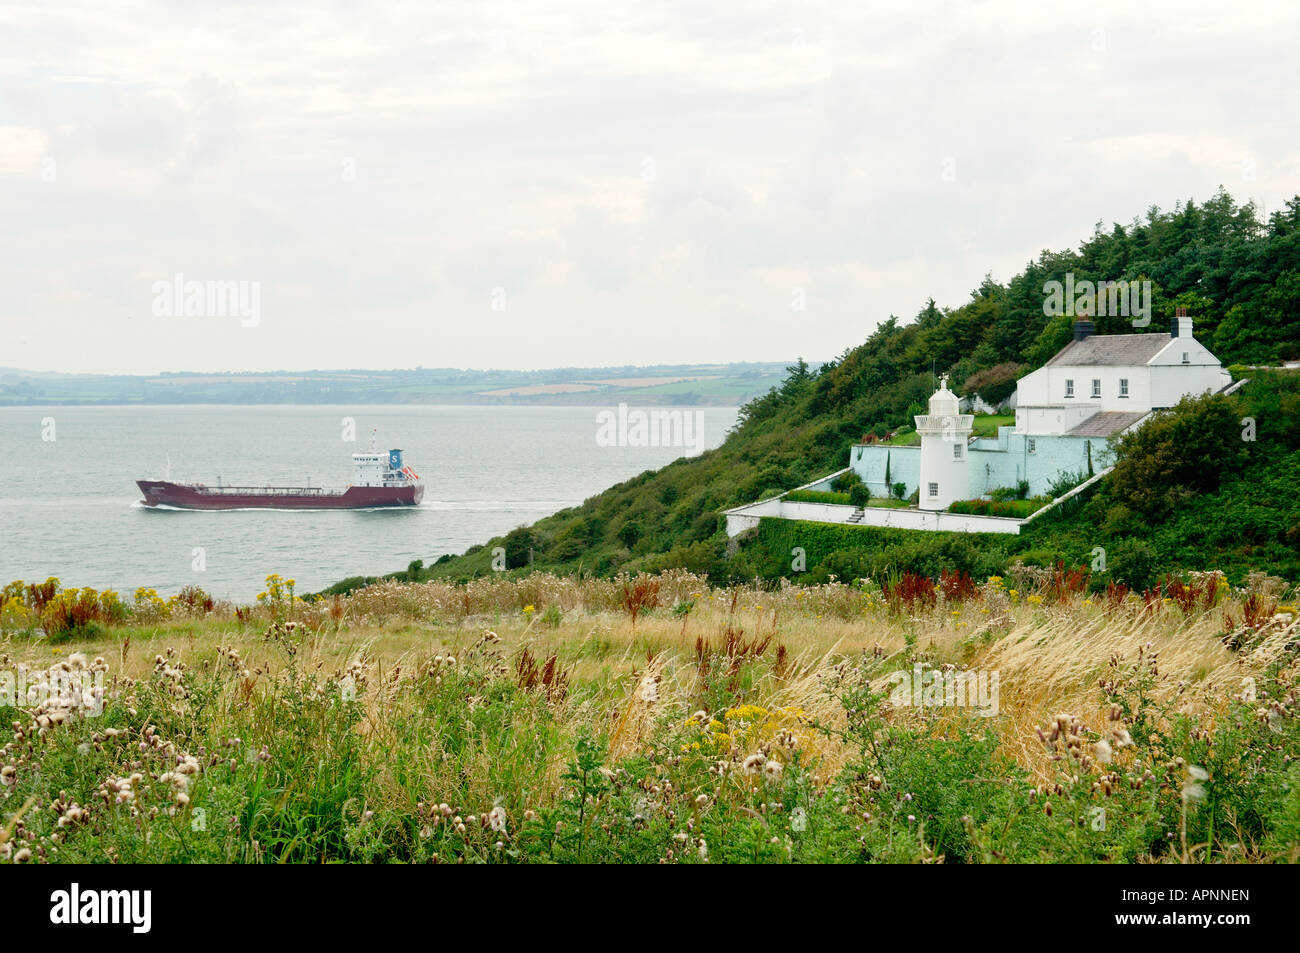 Cargo ship leaves Waterford Harbour, estuary of the rivers Suir and Barrow. Navigation light at Duncannon, Wexford, - Stock Image